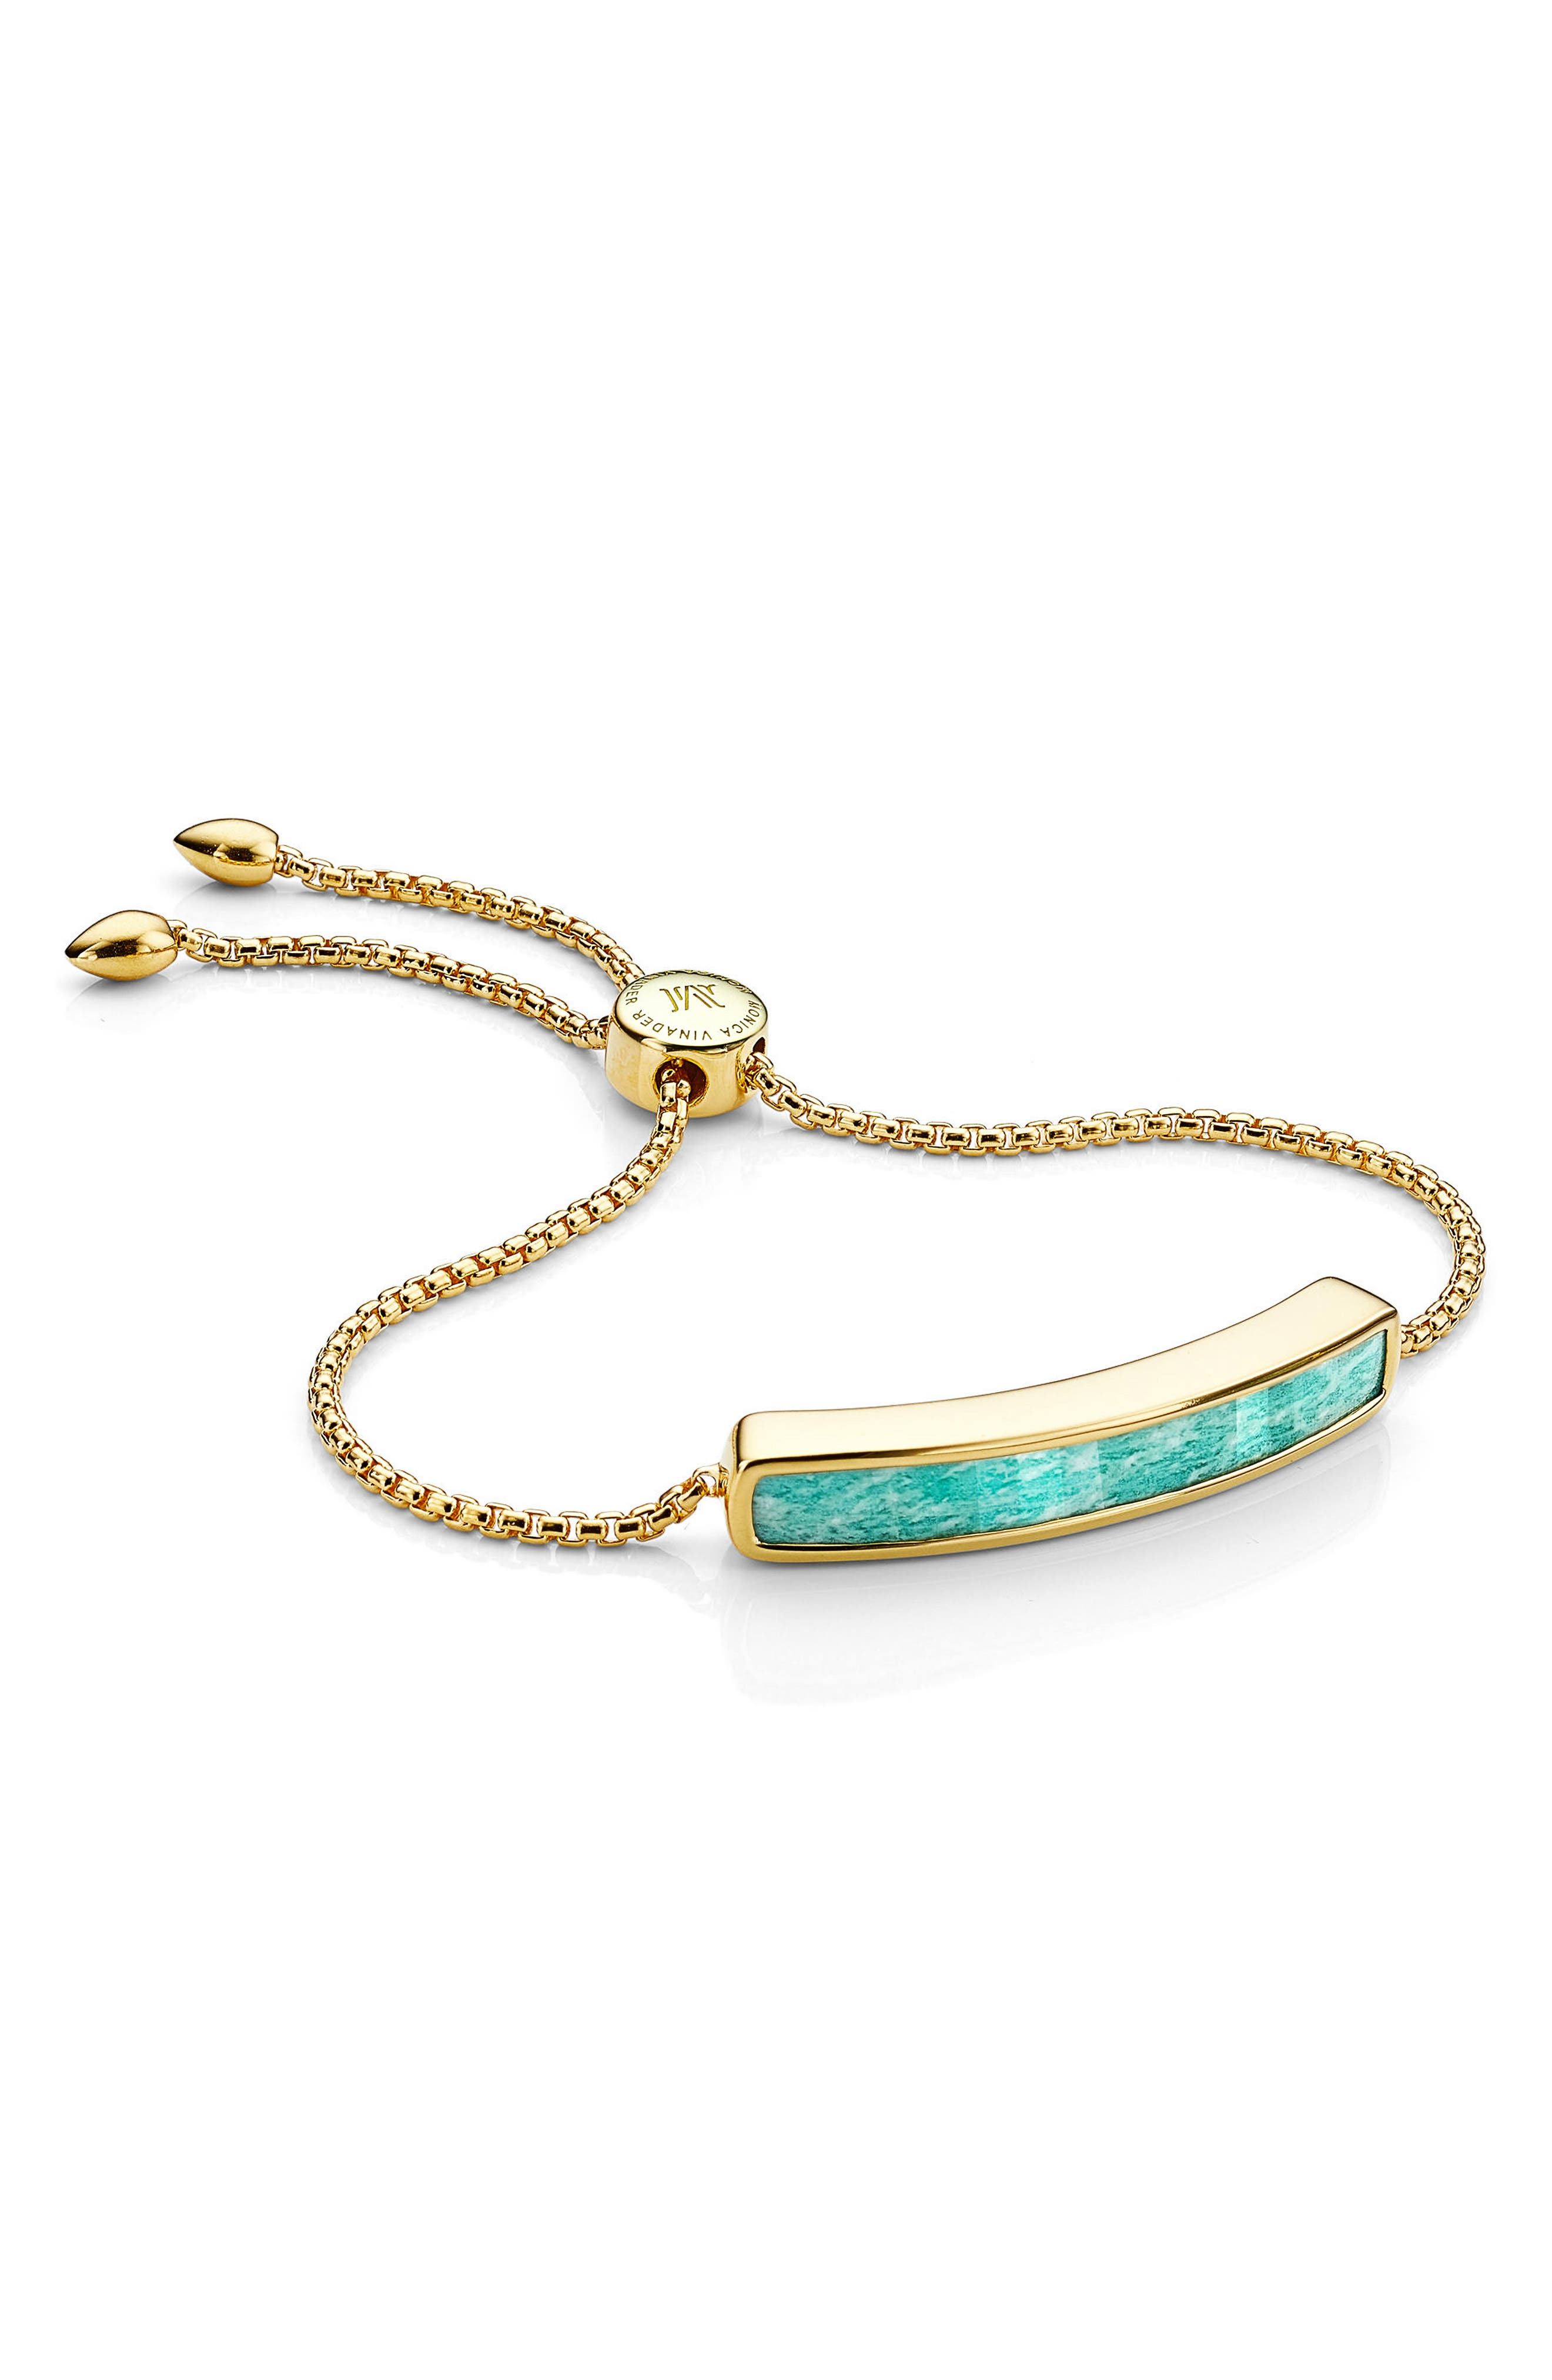 MONICA VINADER Engravable Baja Stone Bracelet, Main, color, GOLD/ AMAZONITE